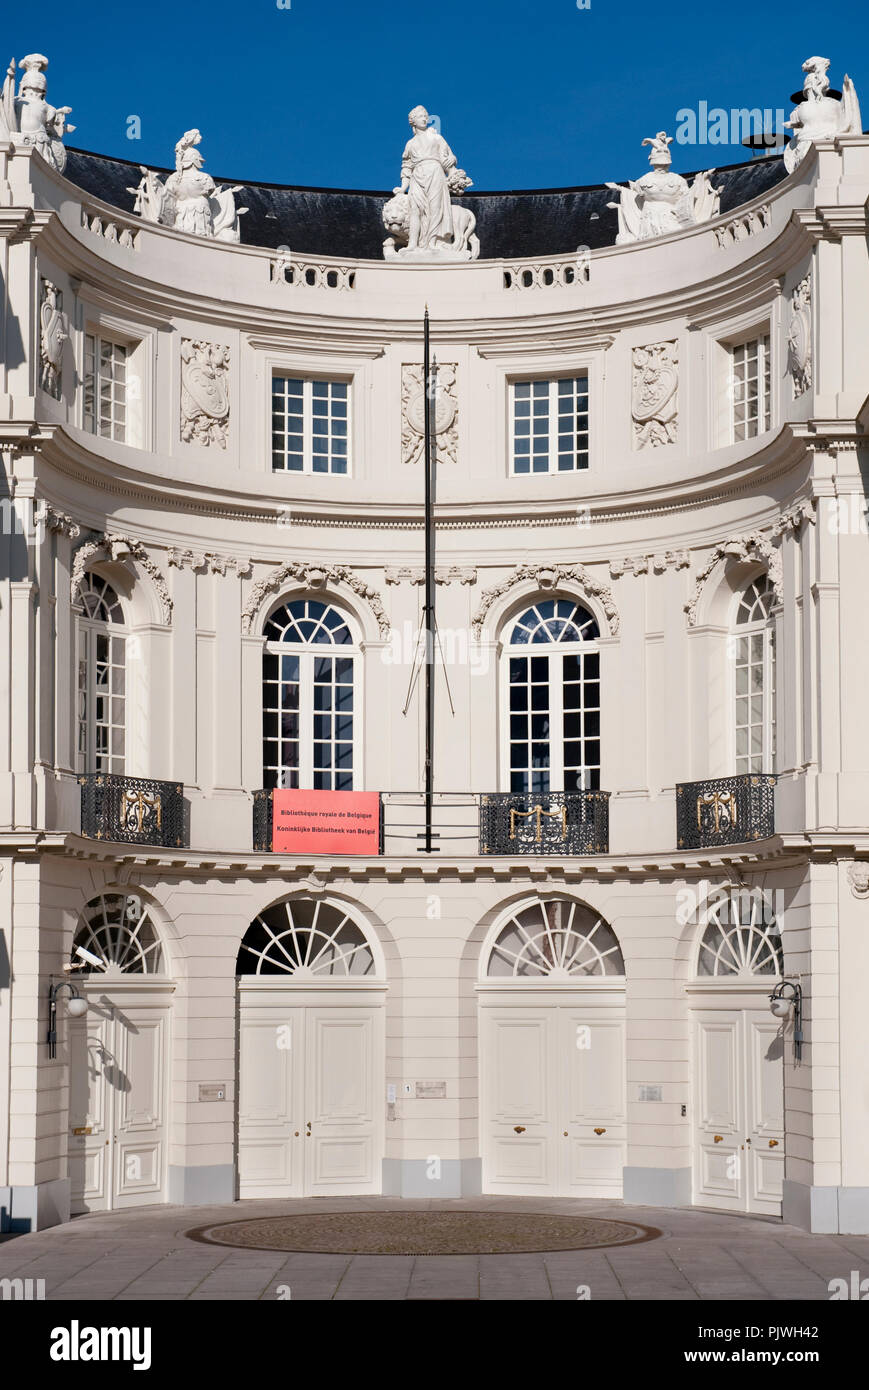 The neo-classical palace of Charles of Lorraine on the Place du Musée in Brussels, housing the Royal Library of Belgium (Belgium, 22/10/2011) - Stock Image